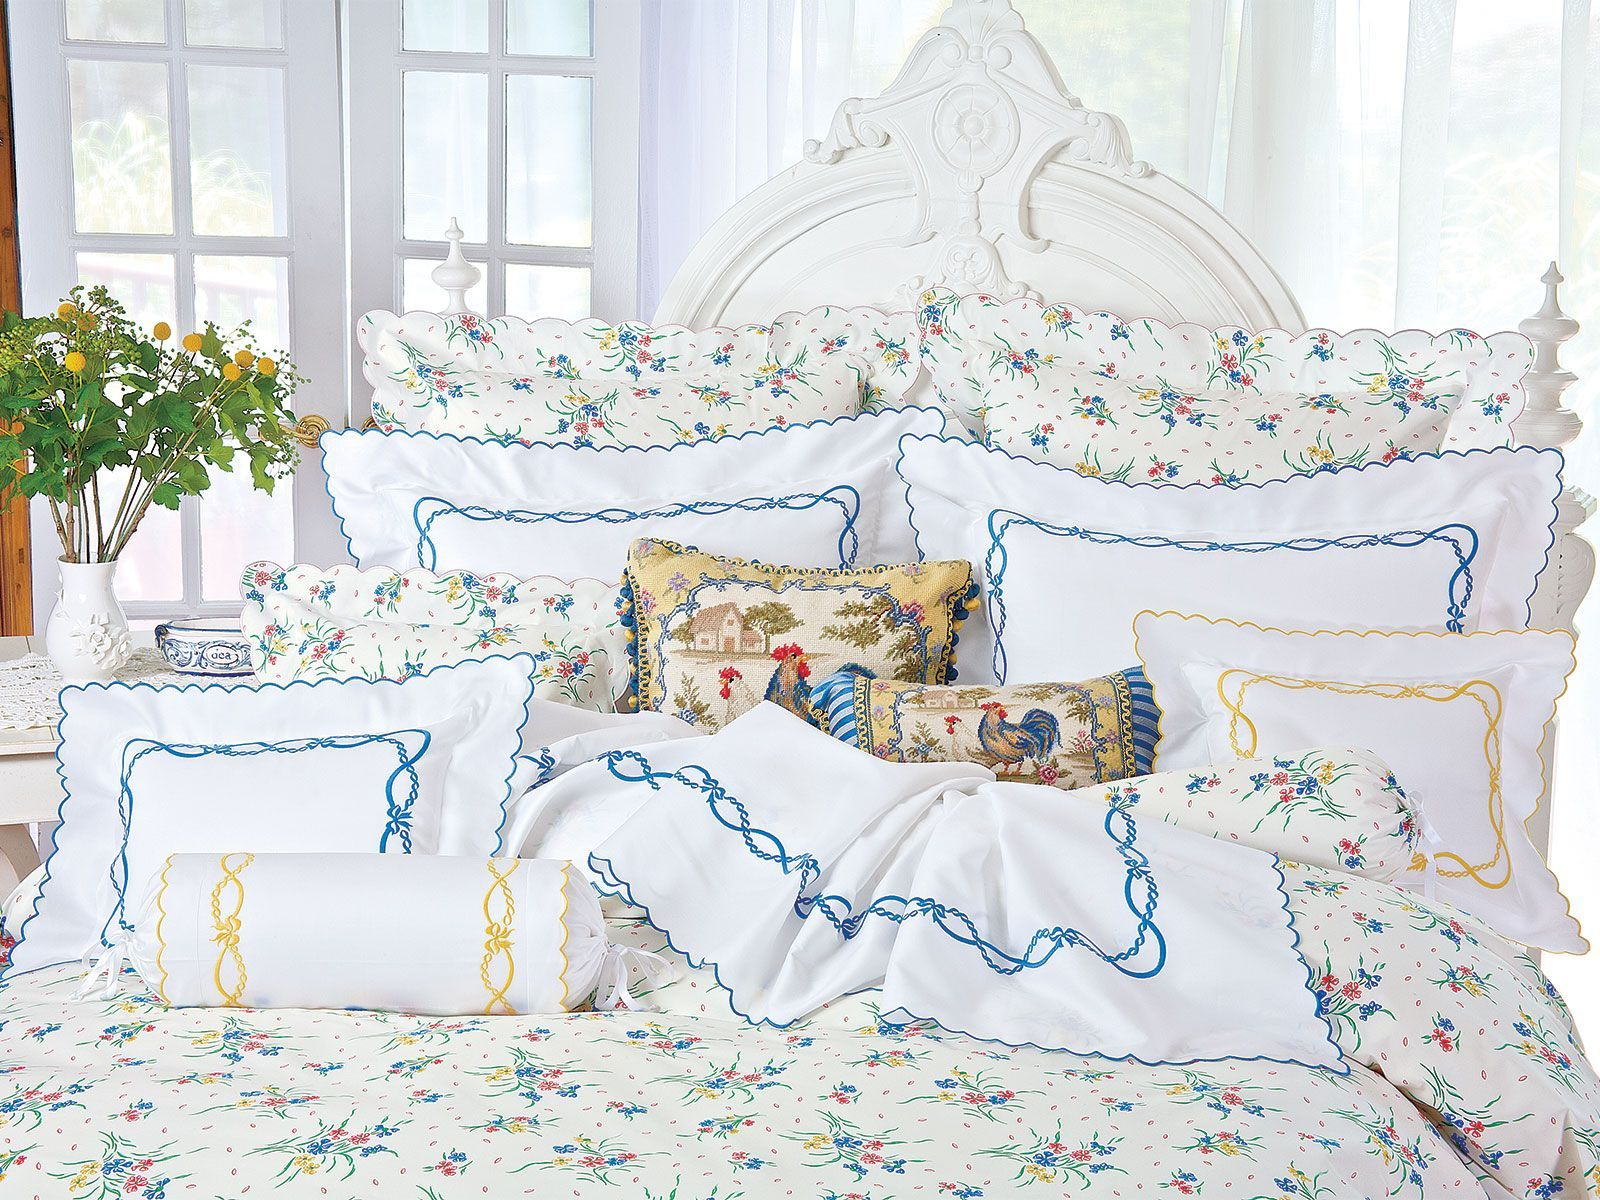 Eclipse fine bed linens luxury bedding italian bed linens